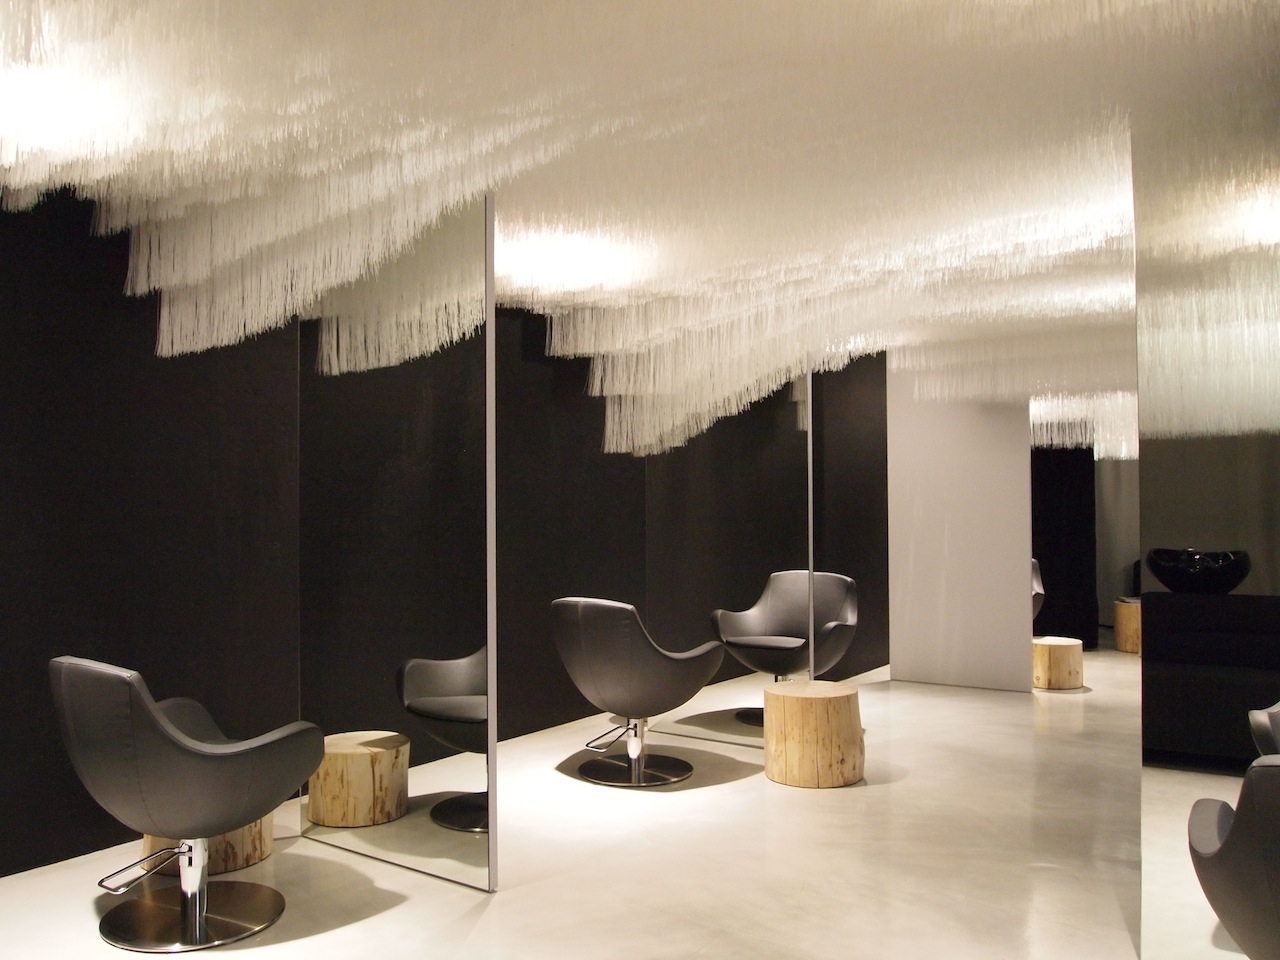 Magnificent Hair Salon Interior Design 1280 x 960 · 253 kB · jpeg